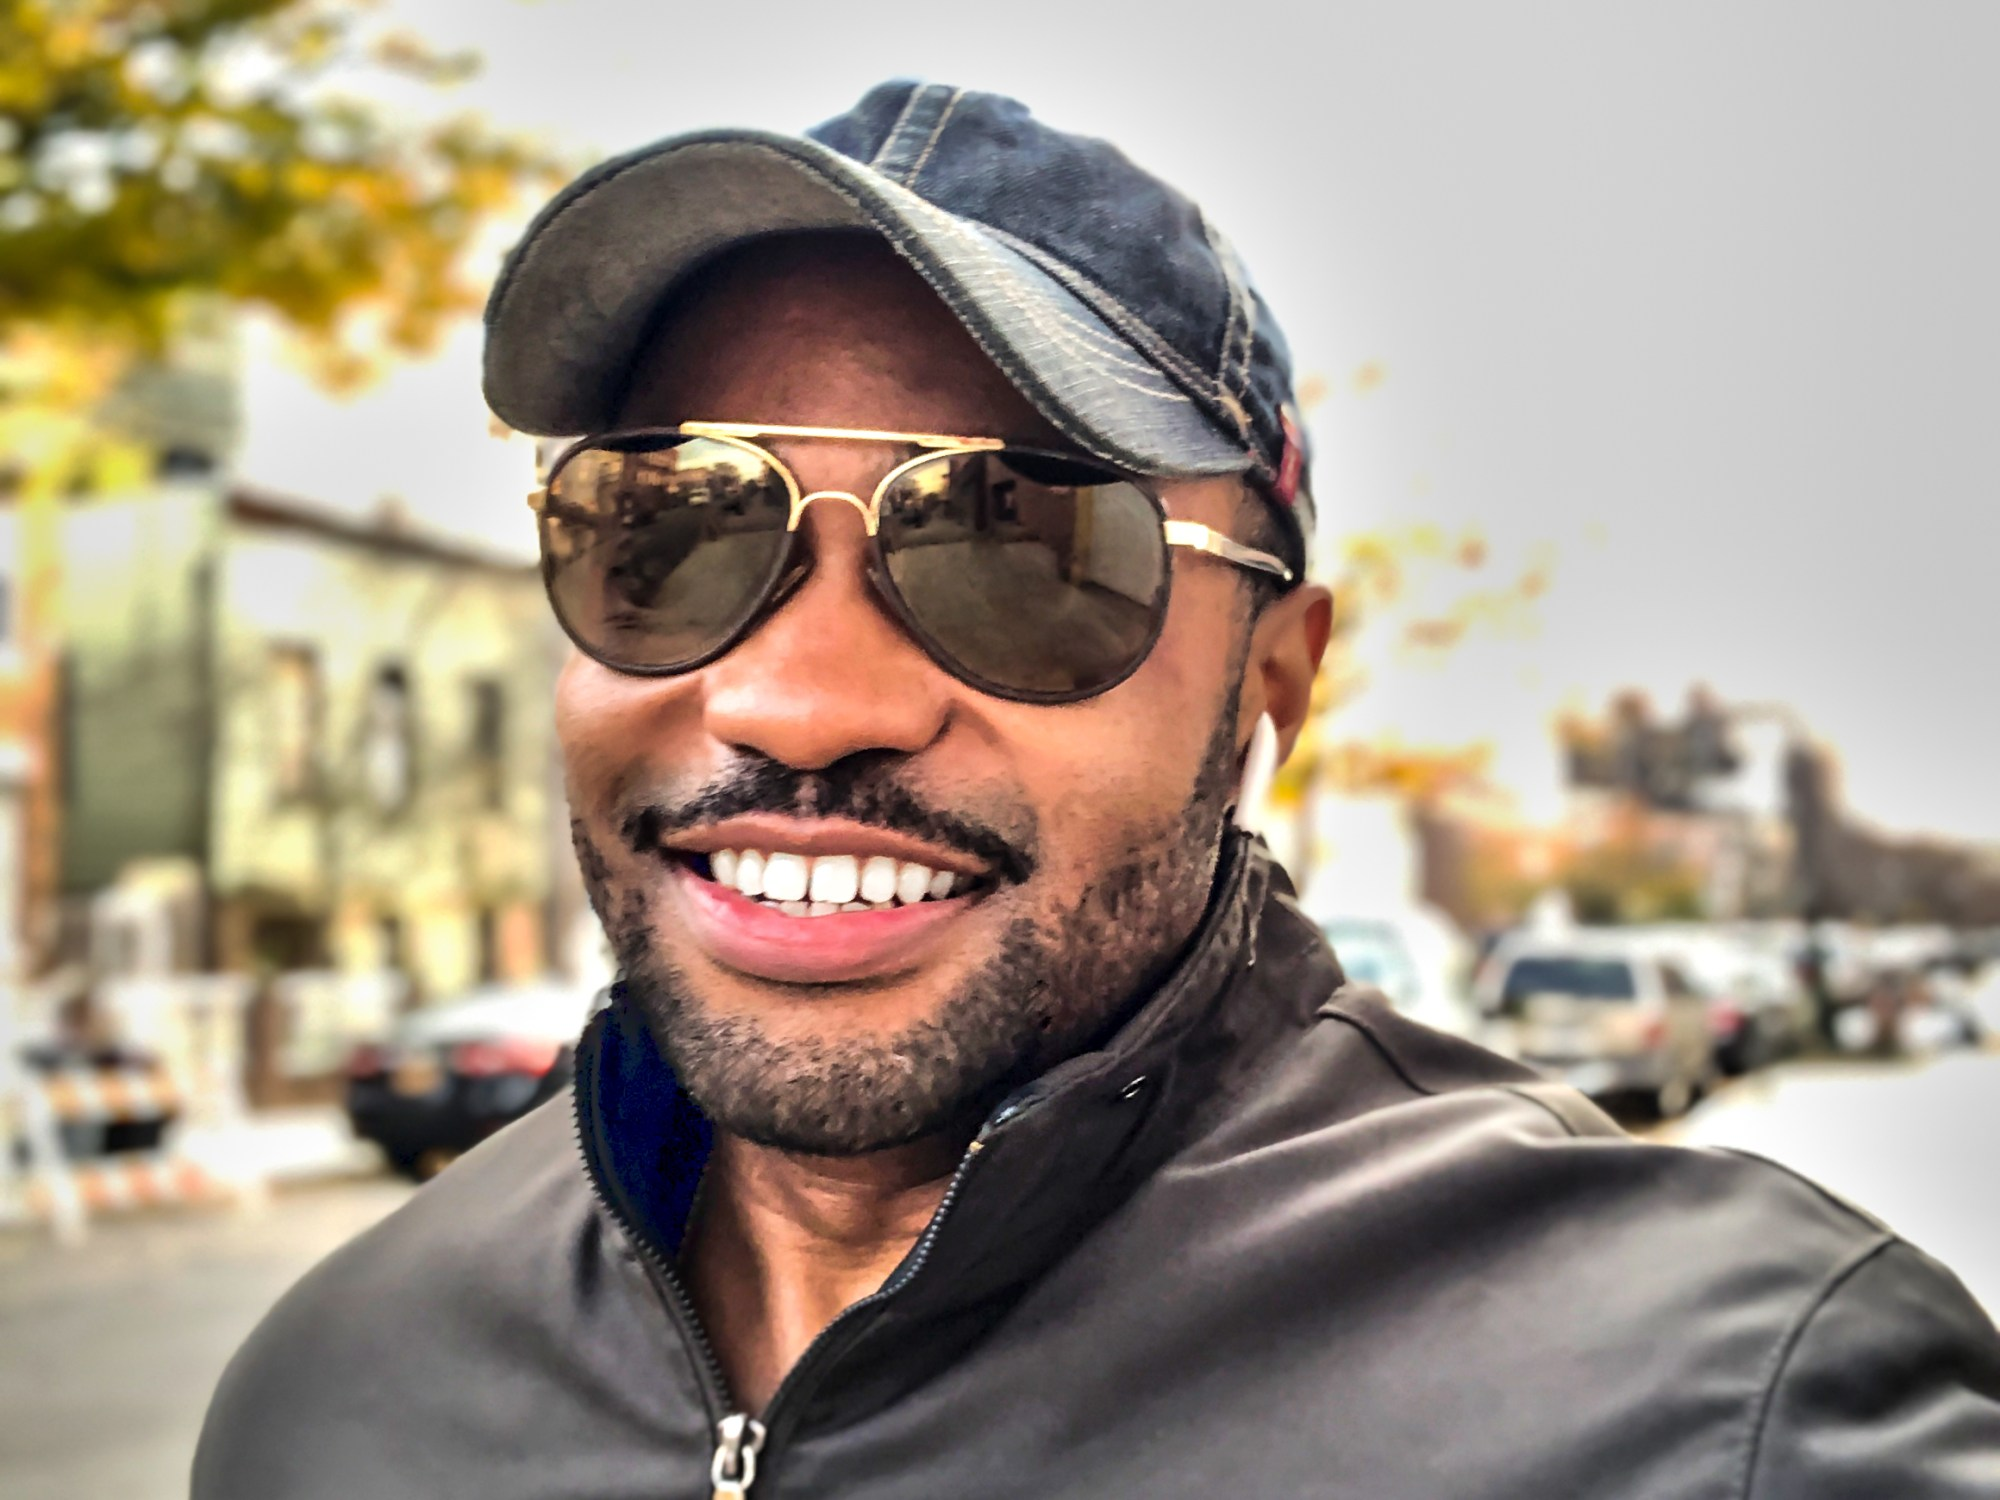 Cold Weather Vibes wearing Levi's hat Barney's Men jacket Louis Vuitton Shades NYC- Tyrone Smith American multi-instrumentalist, producer, composer, musician and entrepreneur